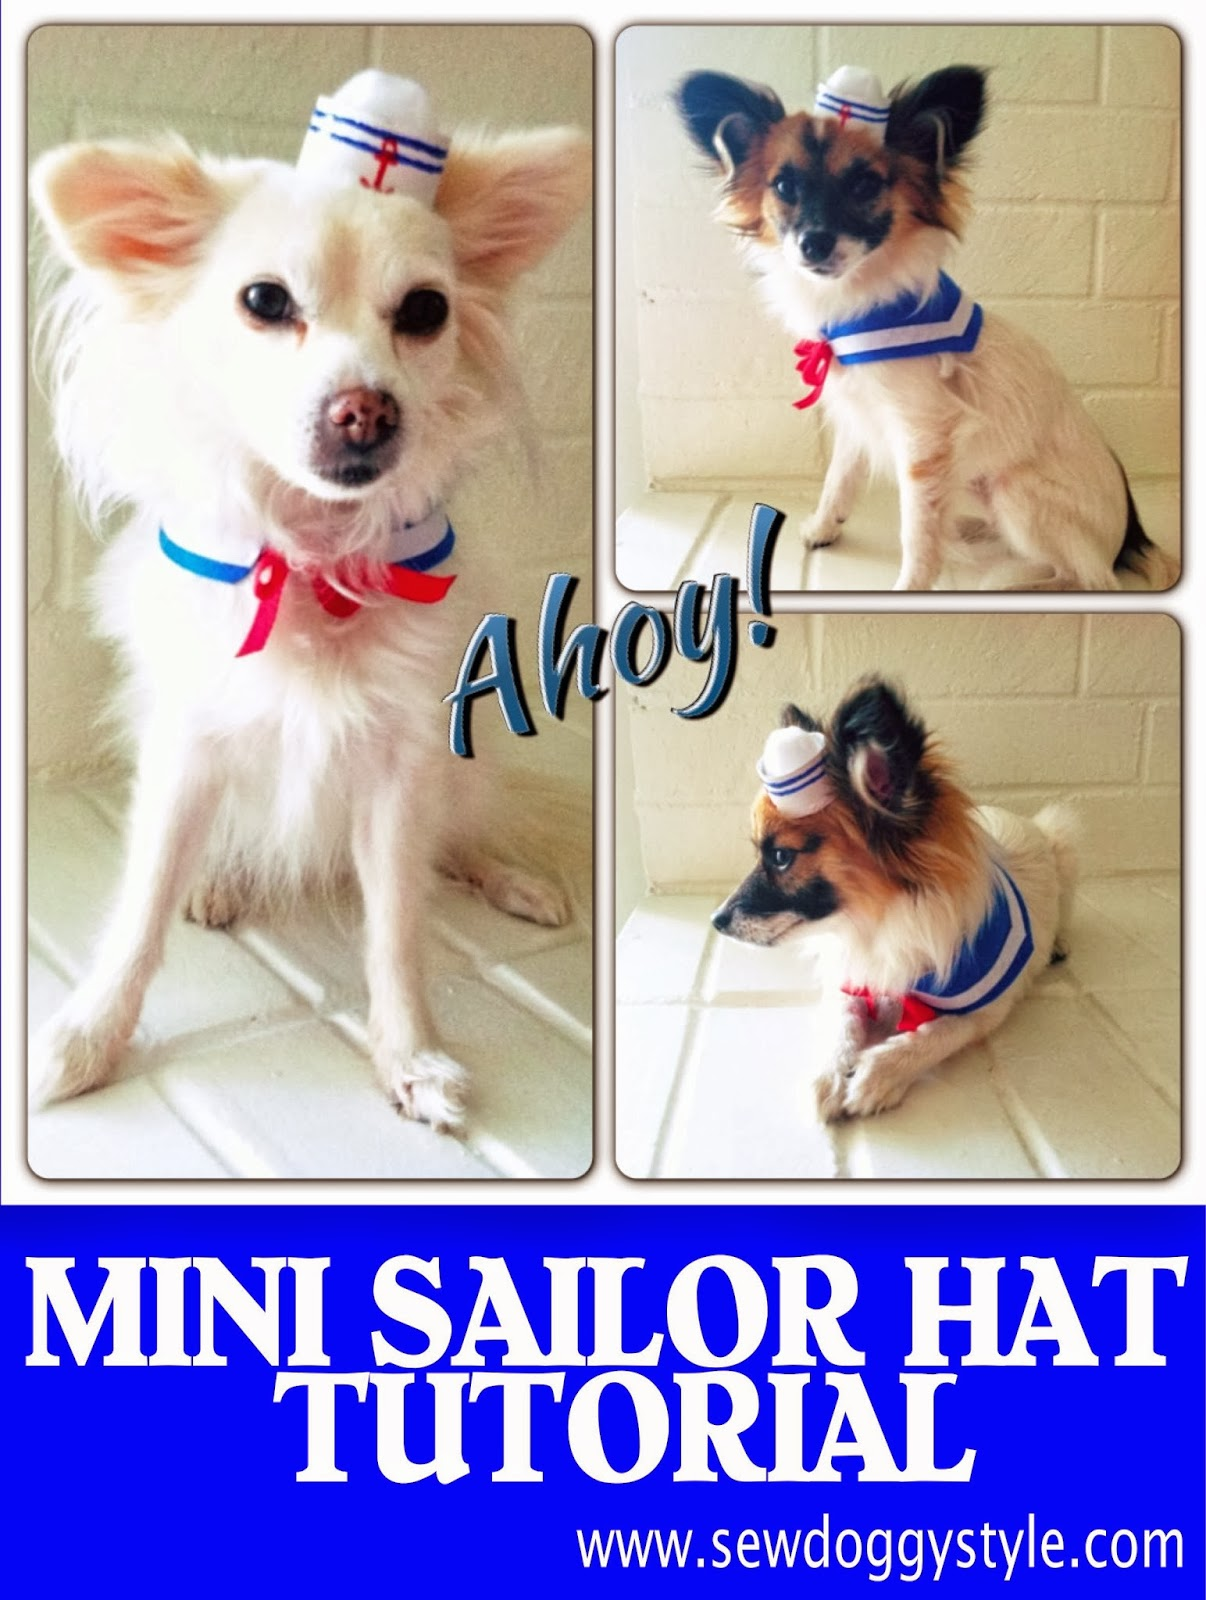 DIY Mini Sailor Hat  sc 1 st  Sew Doggy Style & Sew DoggyStyle: October 2013